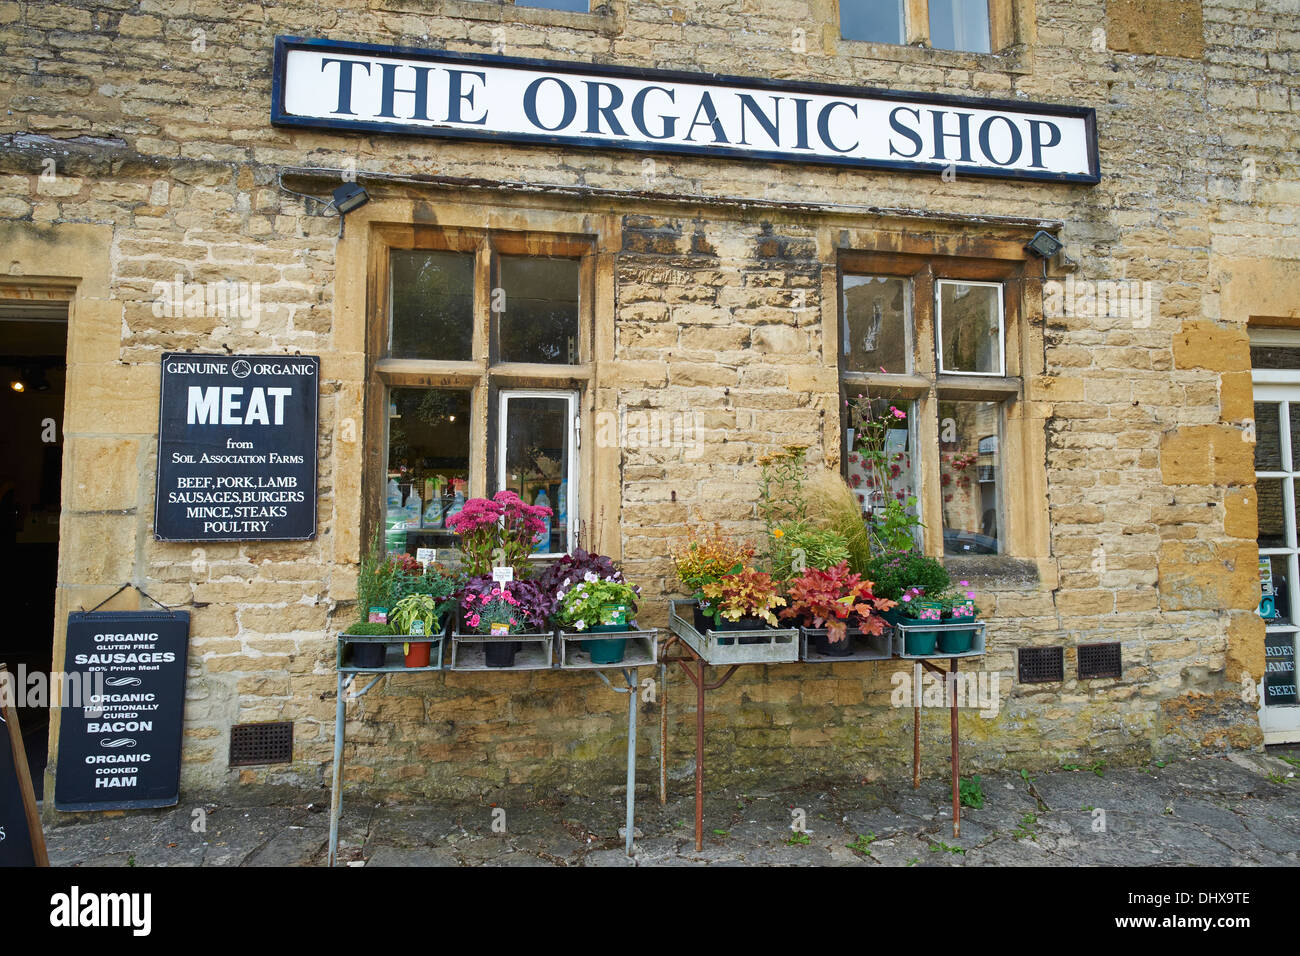 The Organic Shop Market Square Stow On The Wold Cotswolds Uk Stock Photo Alamy